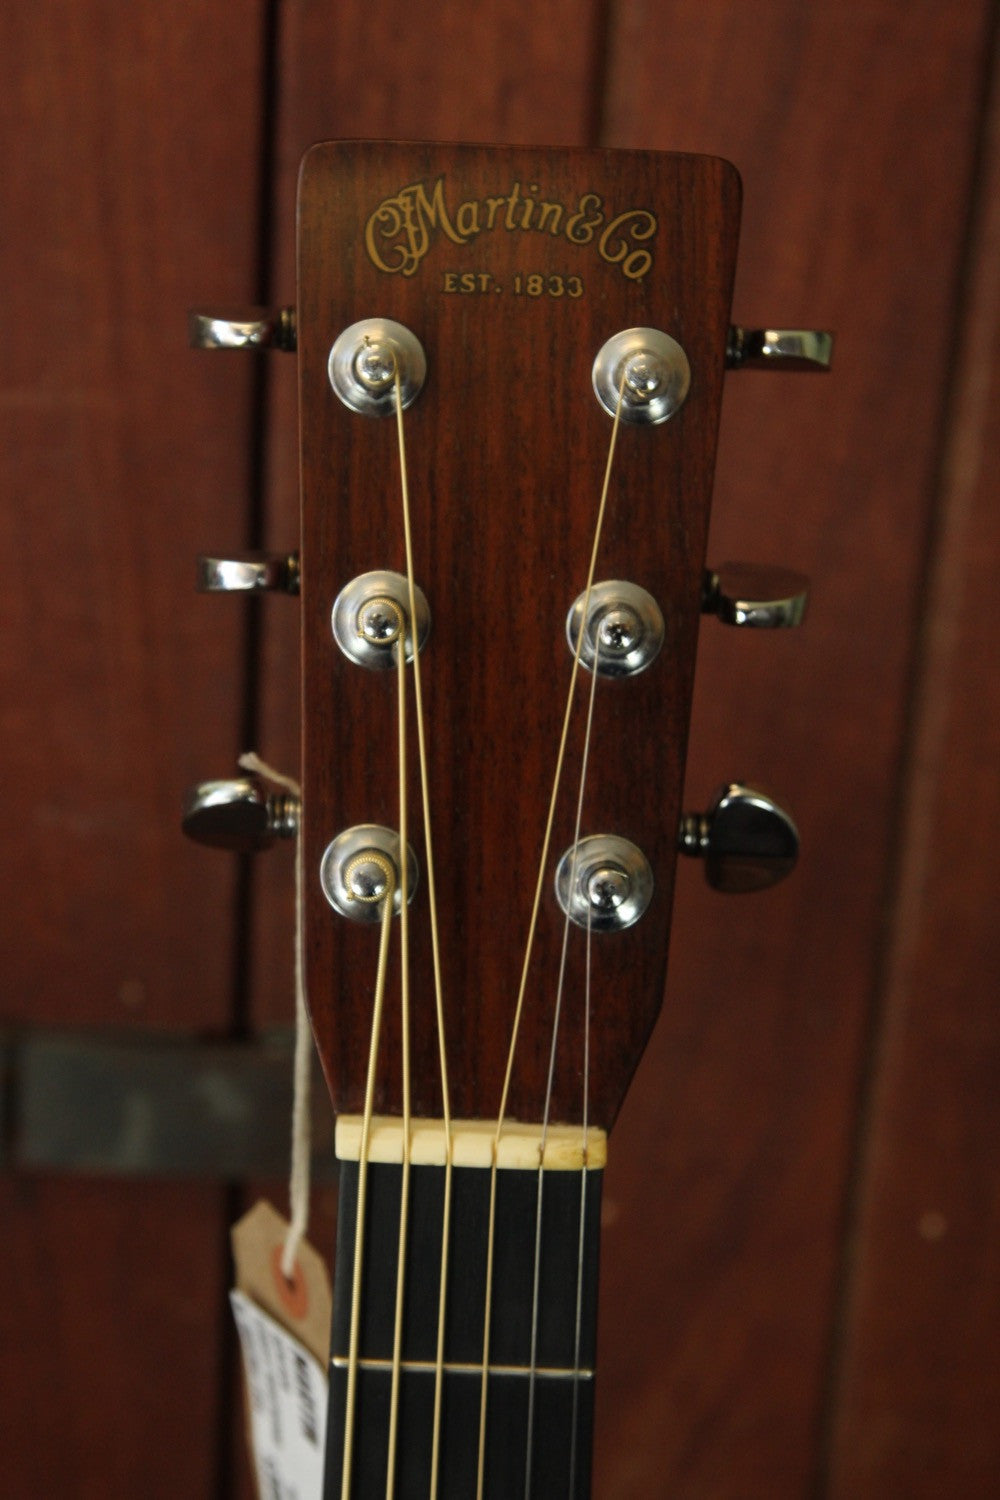 *NEW ARRIVAL* Martin D-28 Vintage 1974 Acoustic Guitar - One Owner - The Rock Inn